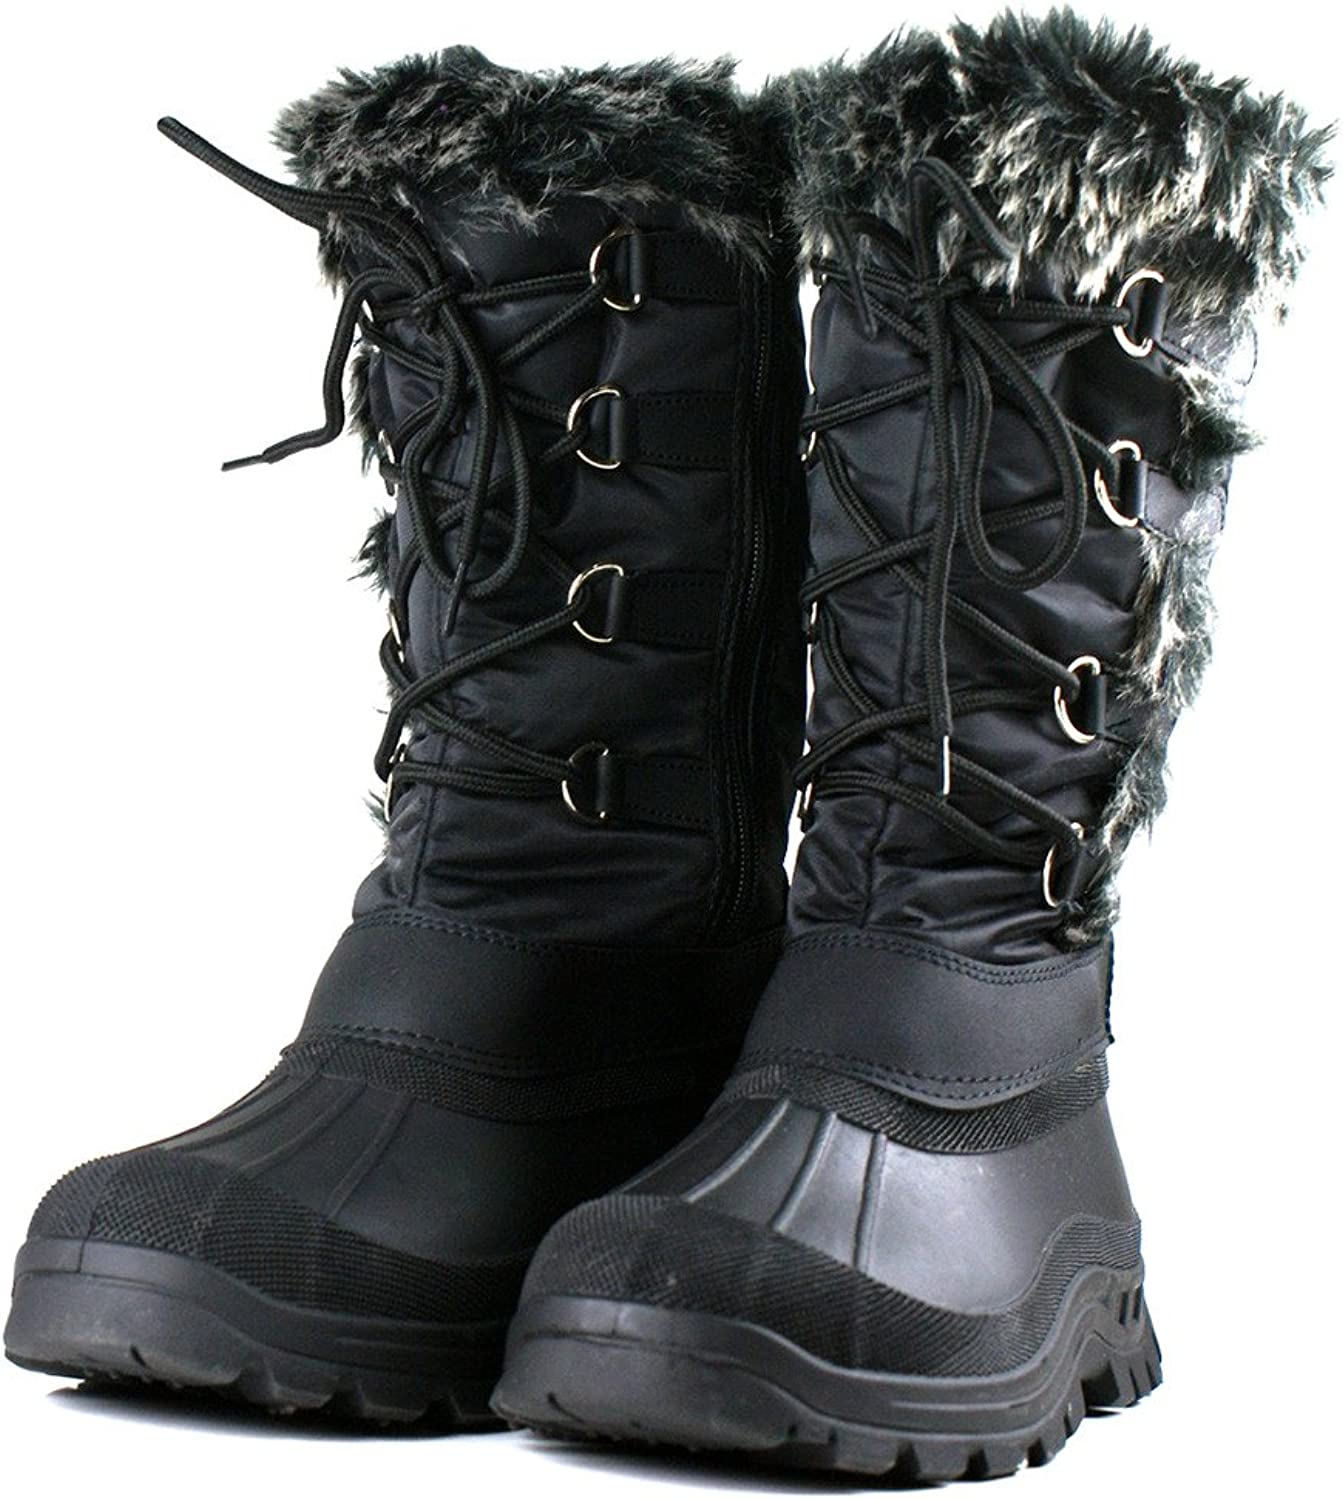 Own shoes Ownshoes Women's Lace Up Fur Rubber Duck Snow Boots